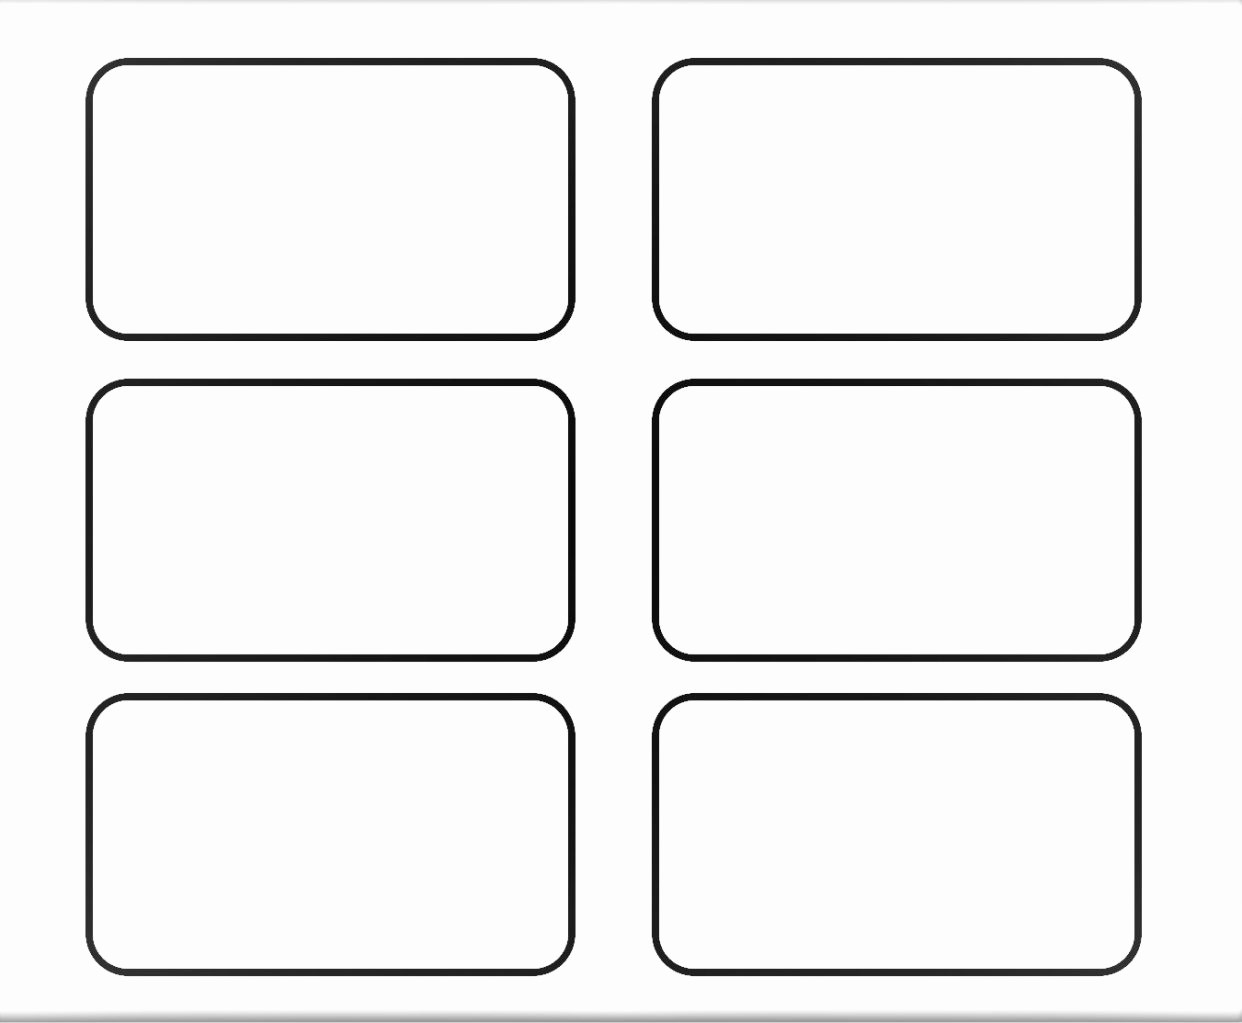 Free Template for Name Tags New Name Tag Template Free Printable Design Word